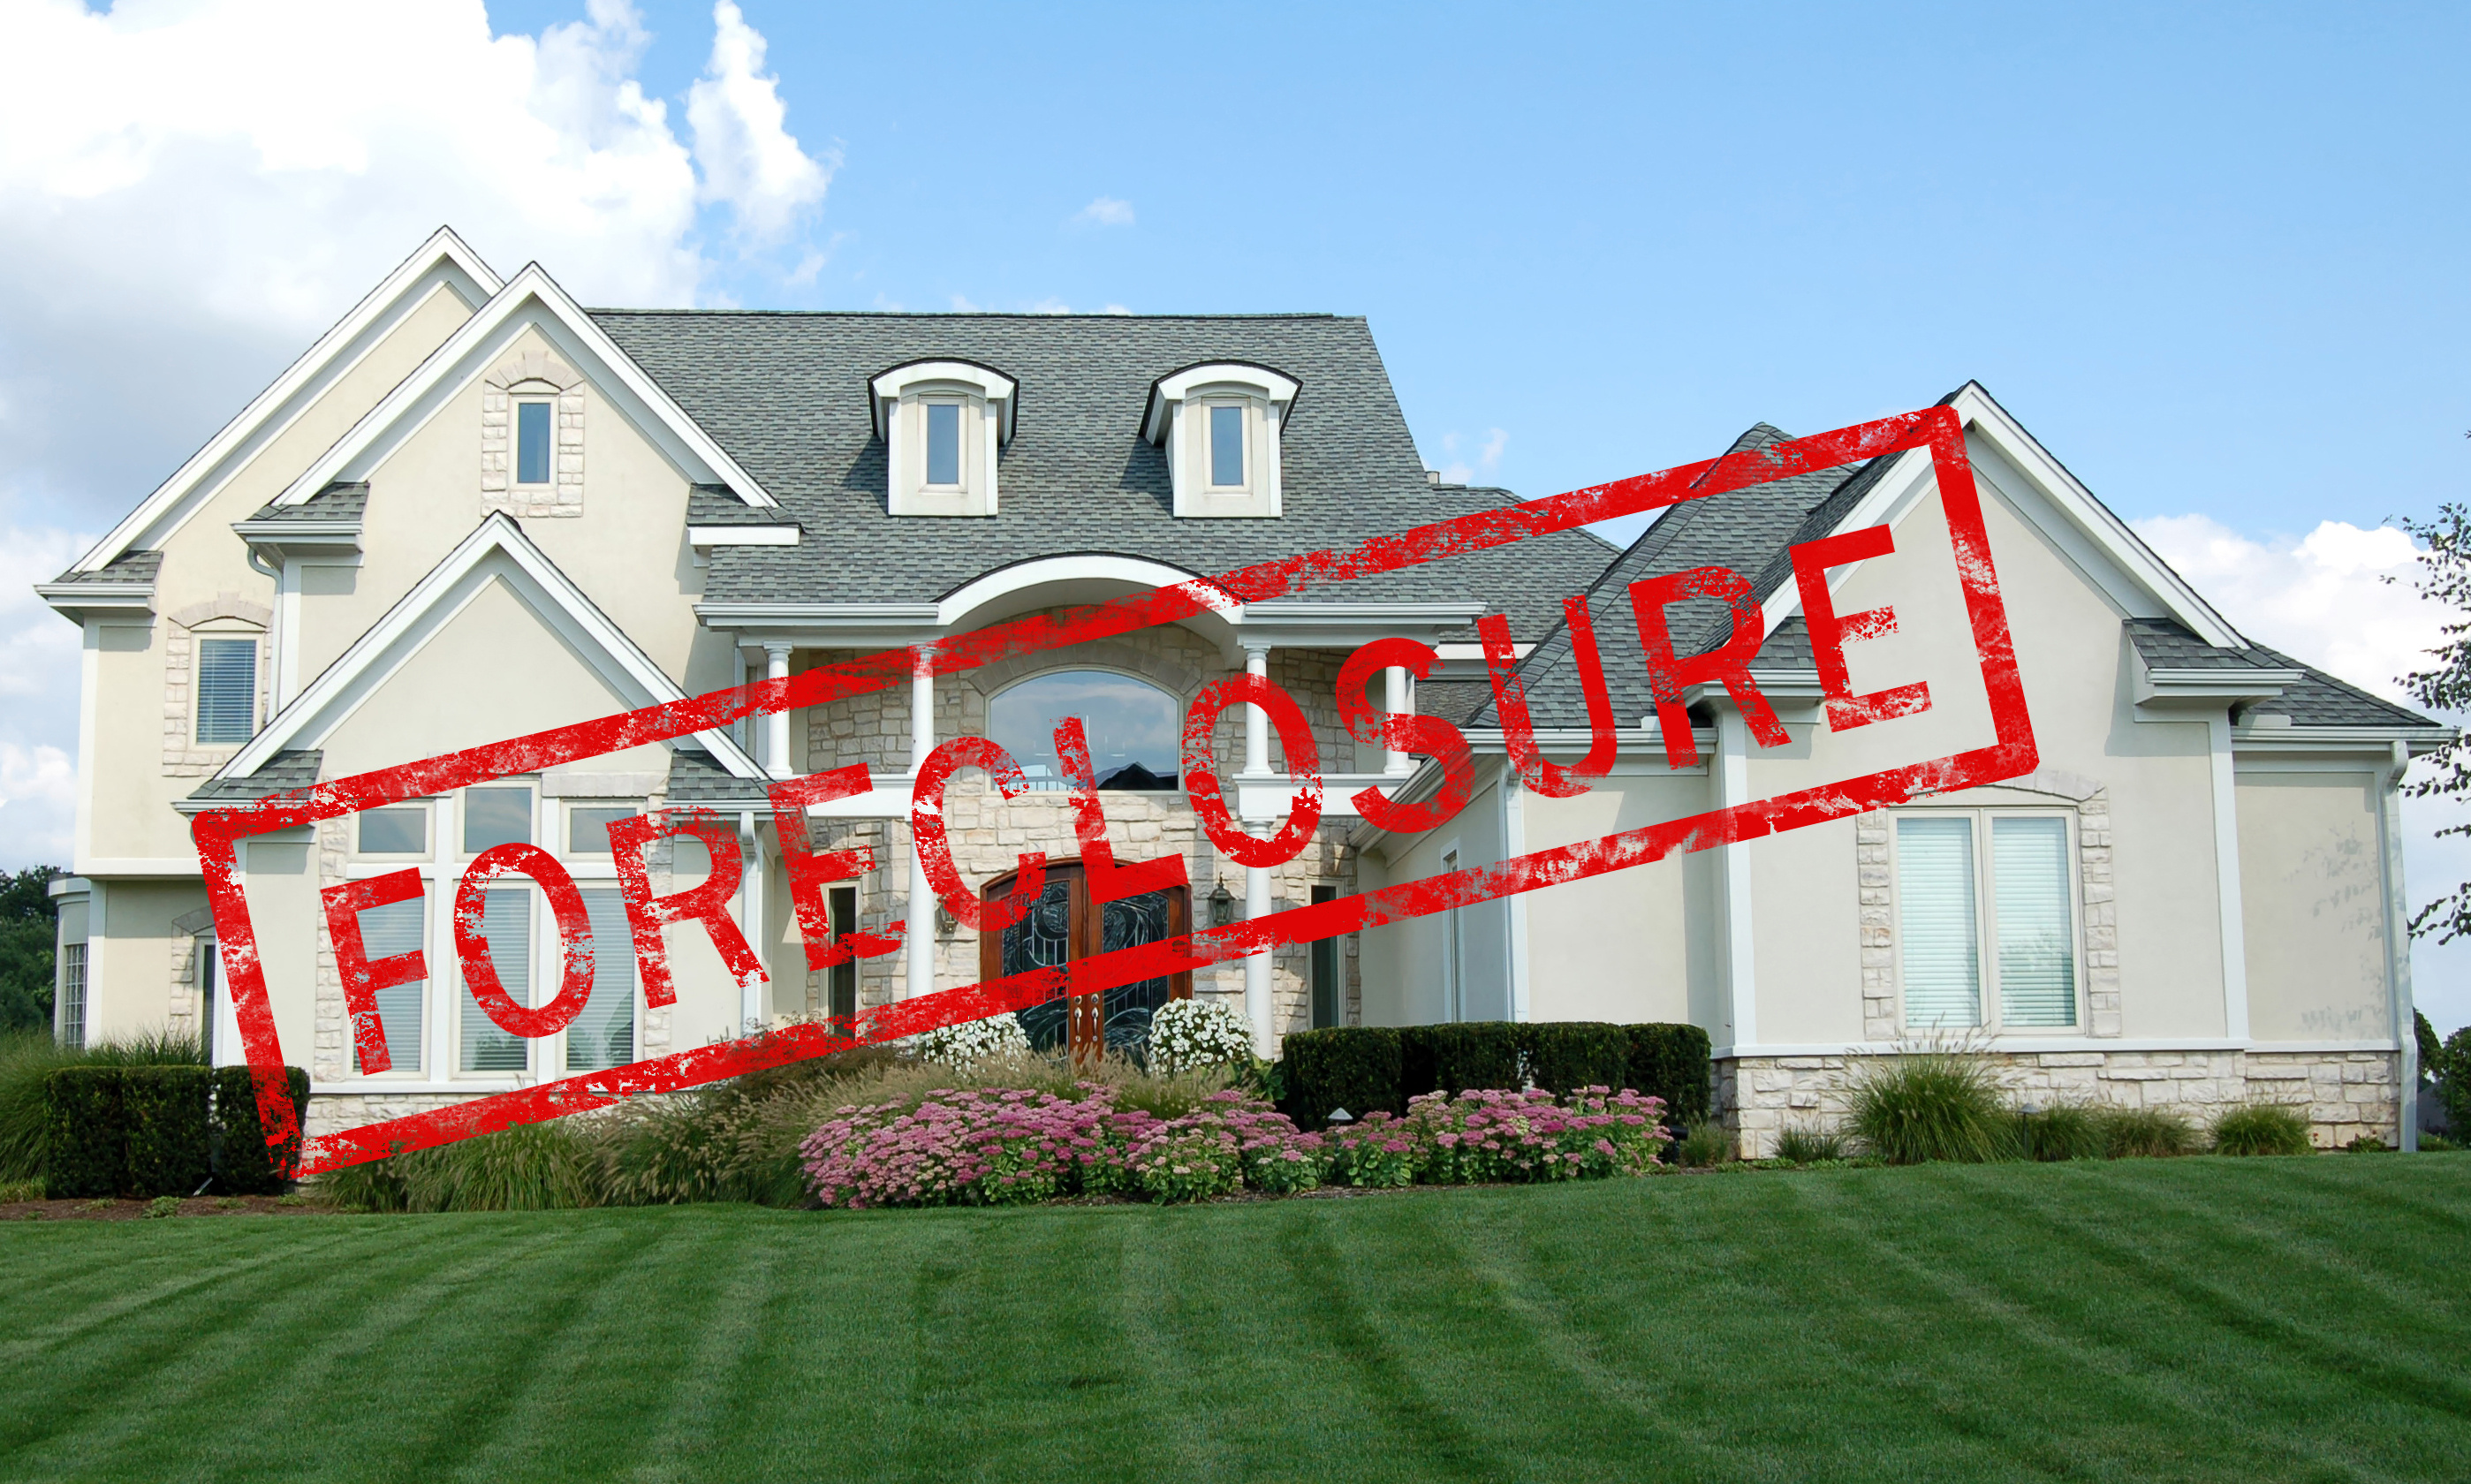 Call Timeline Appraisal Services, LLC when you need valuations regarding Maricopa foreclosures